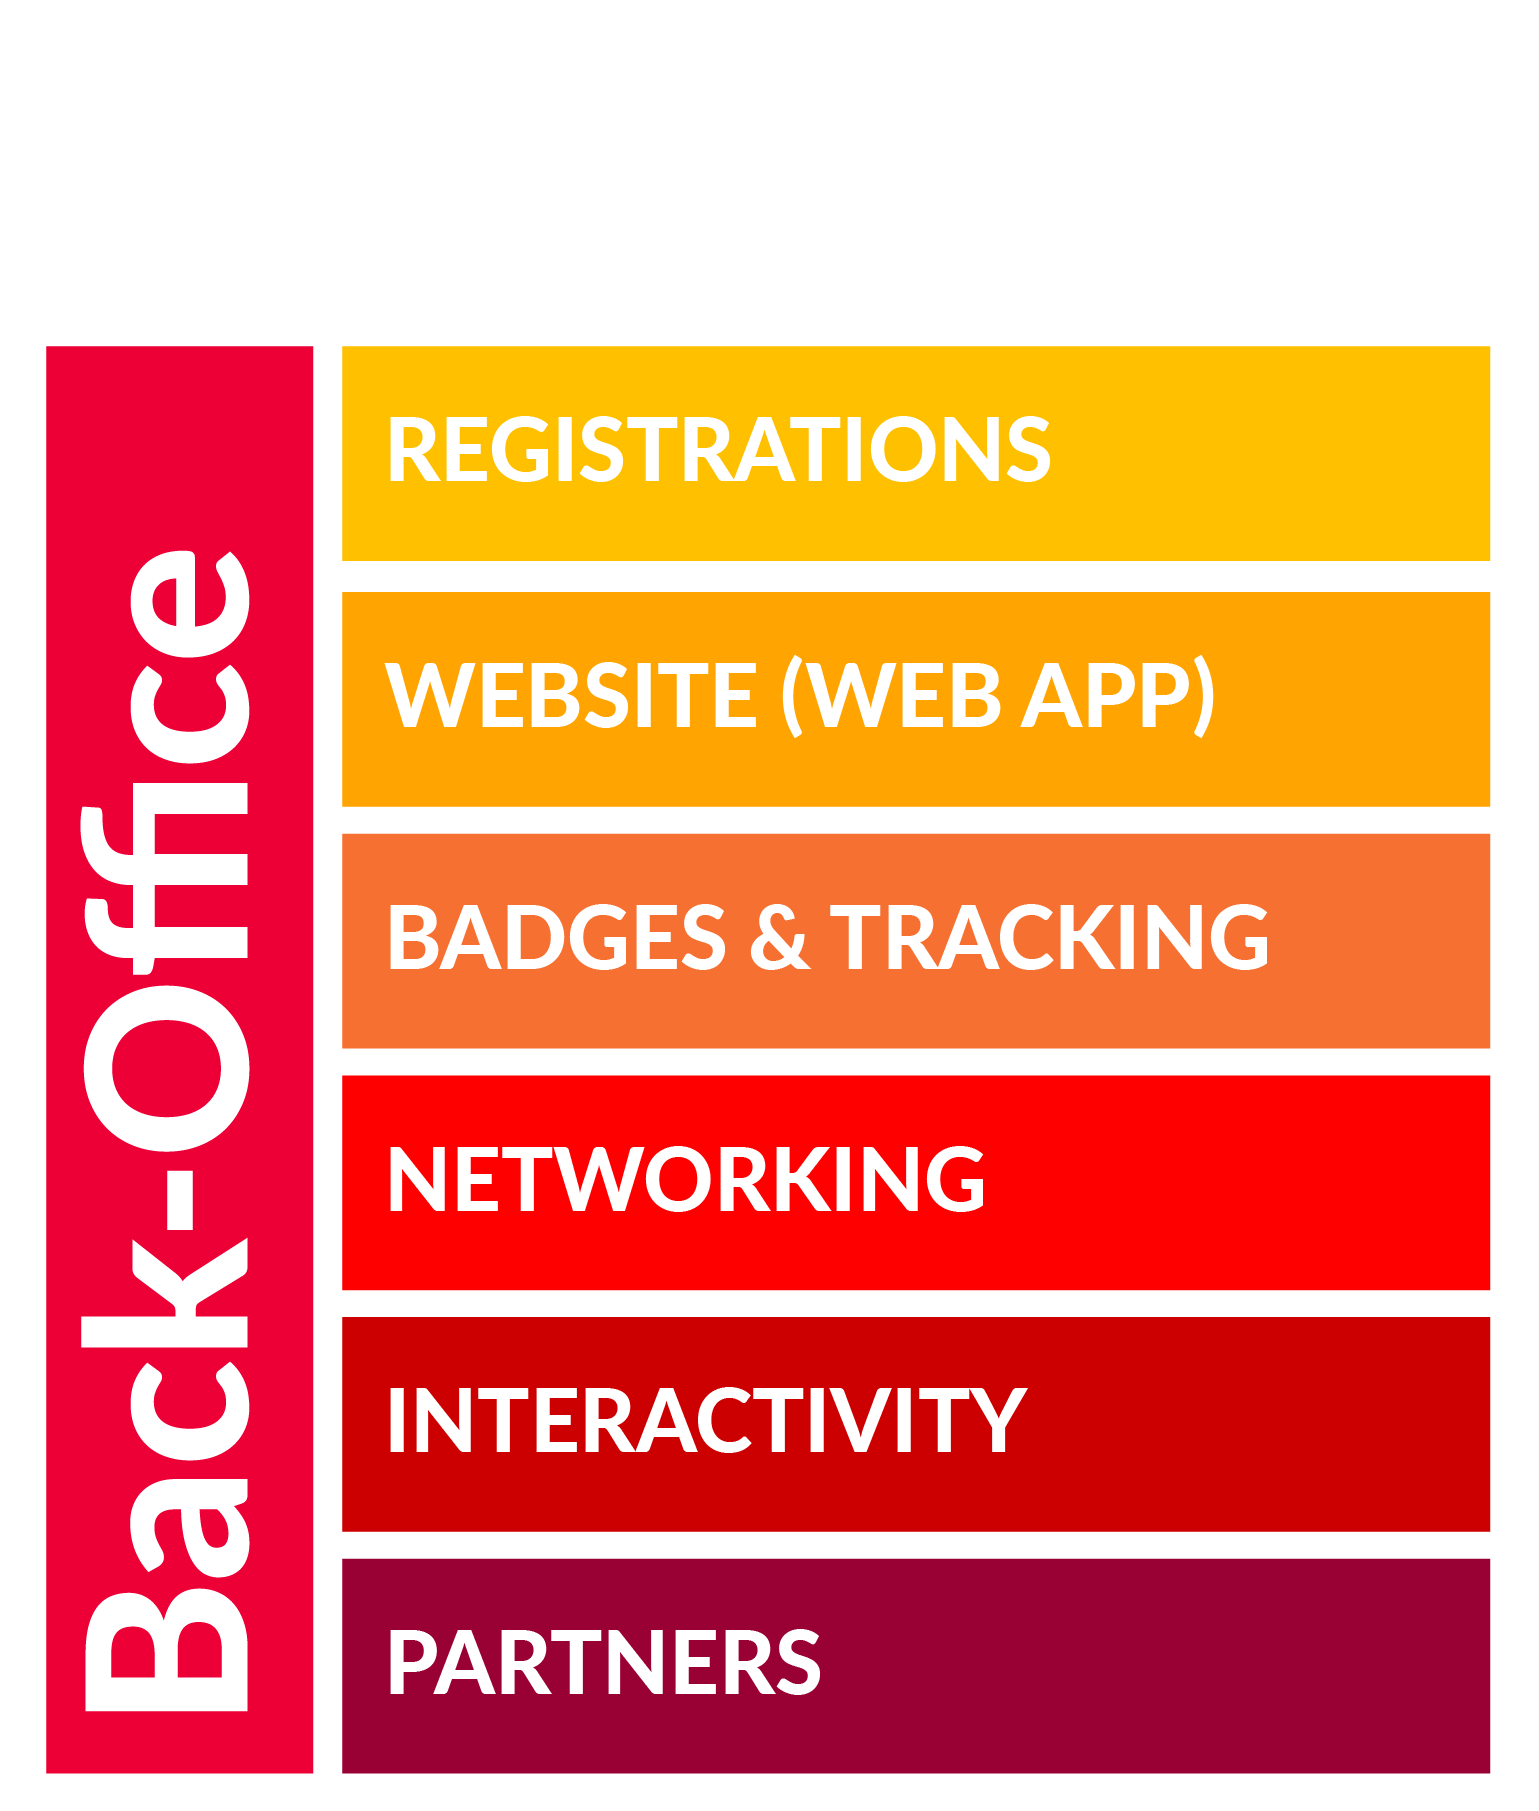 Registration, web app, badges, tracking, networking, interactivity, partners